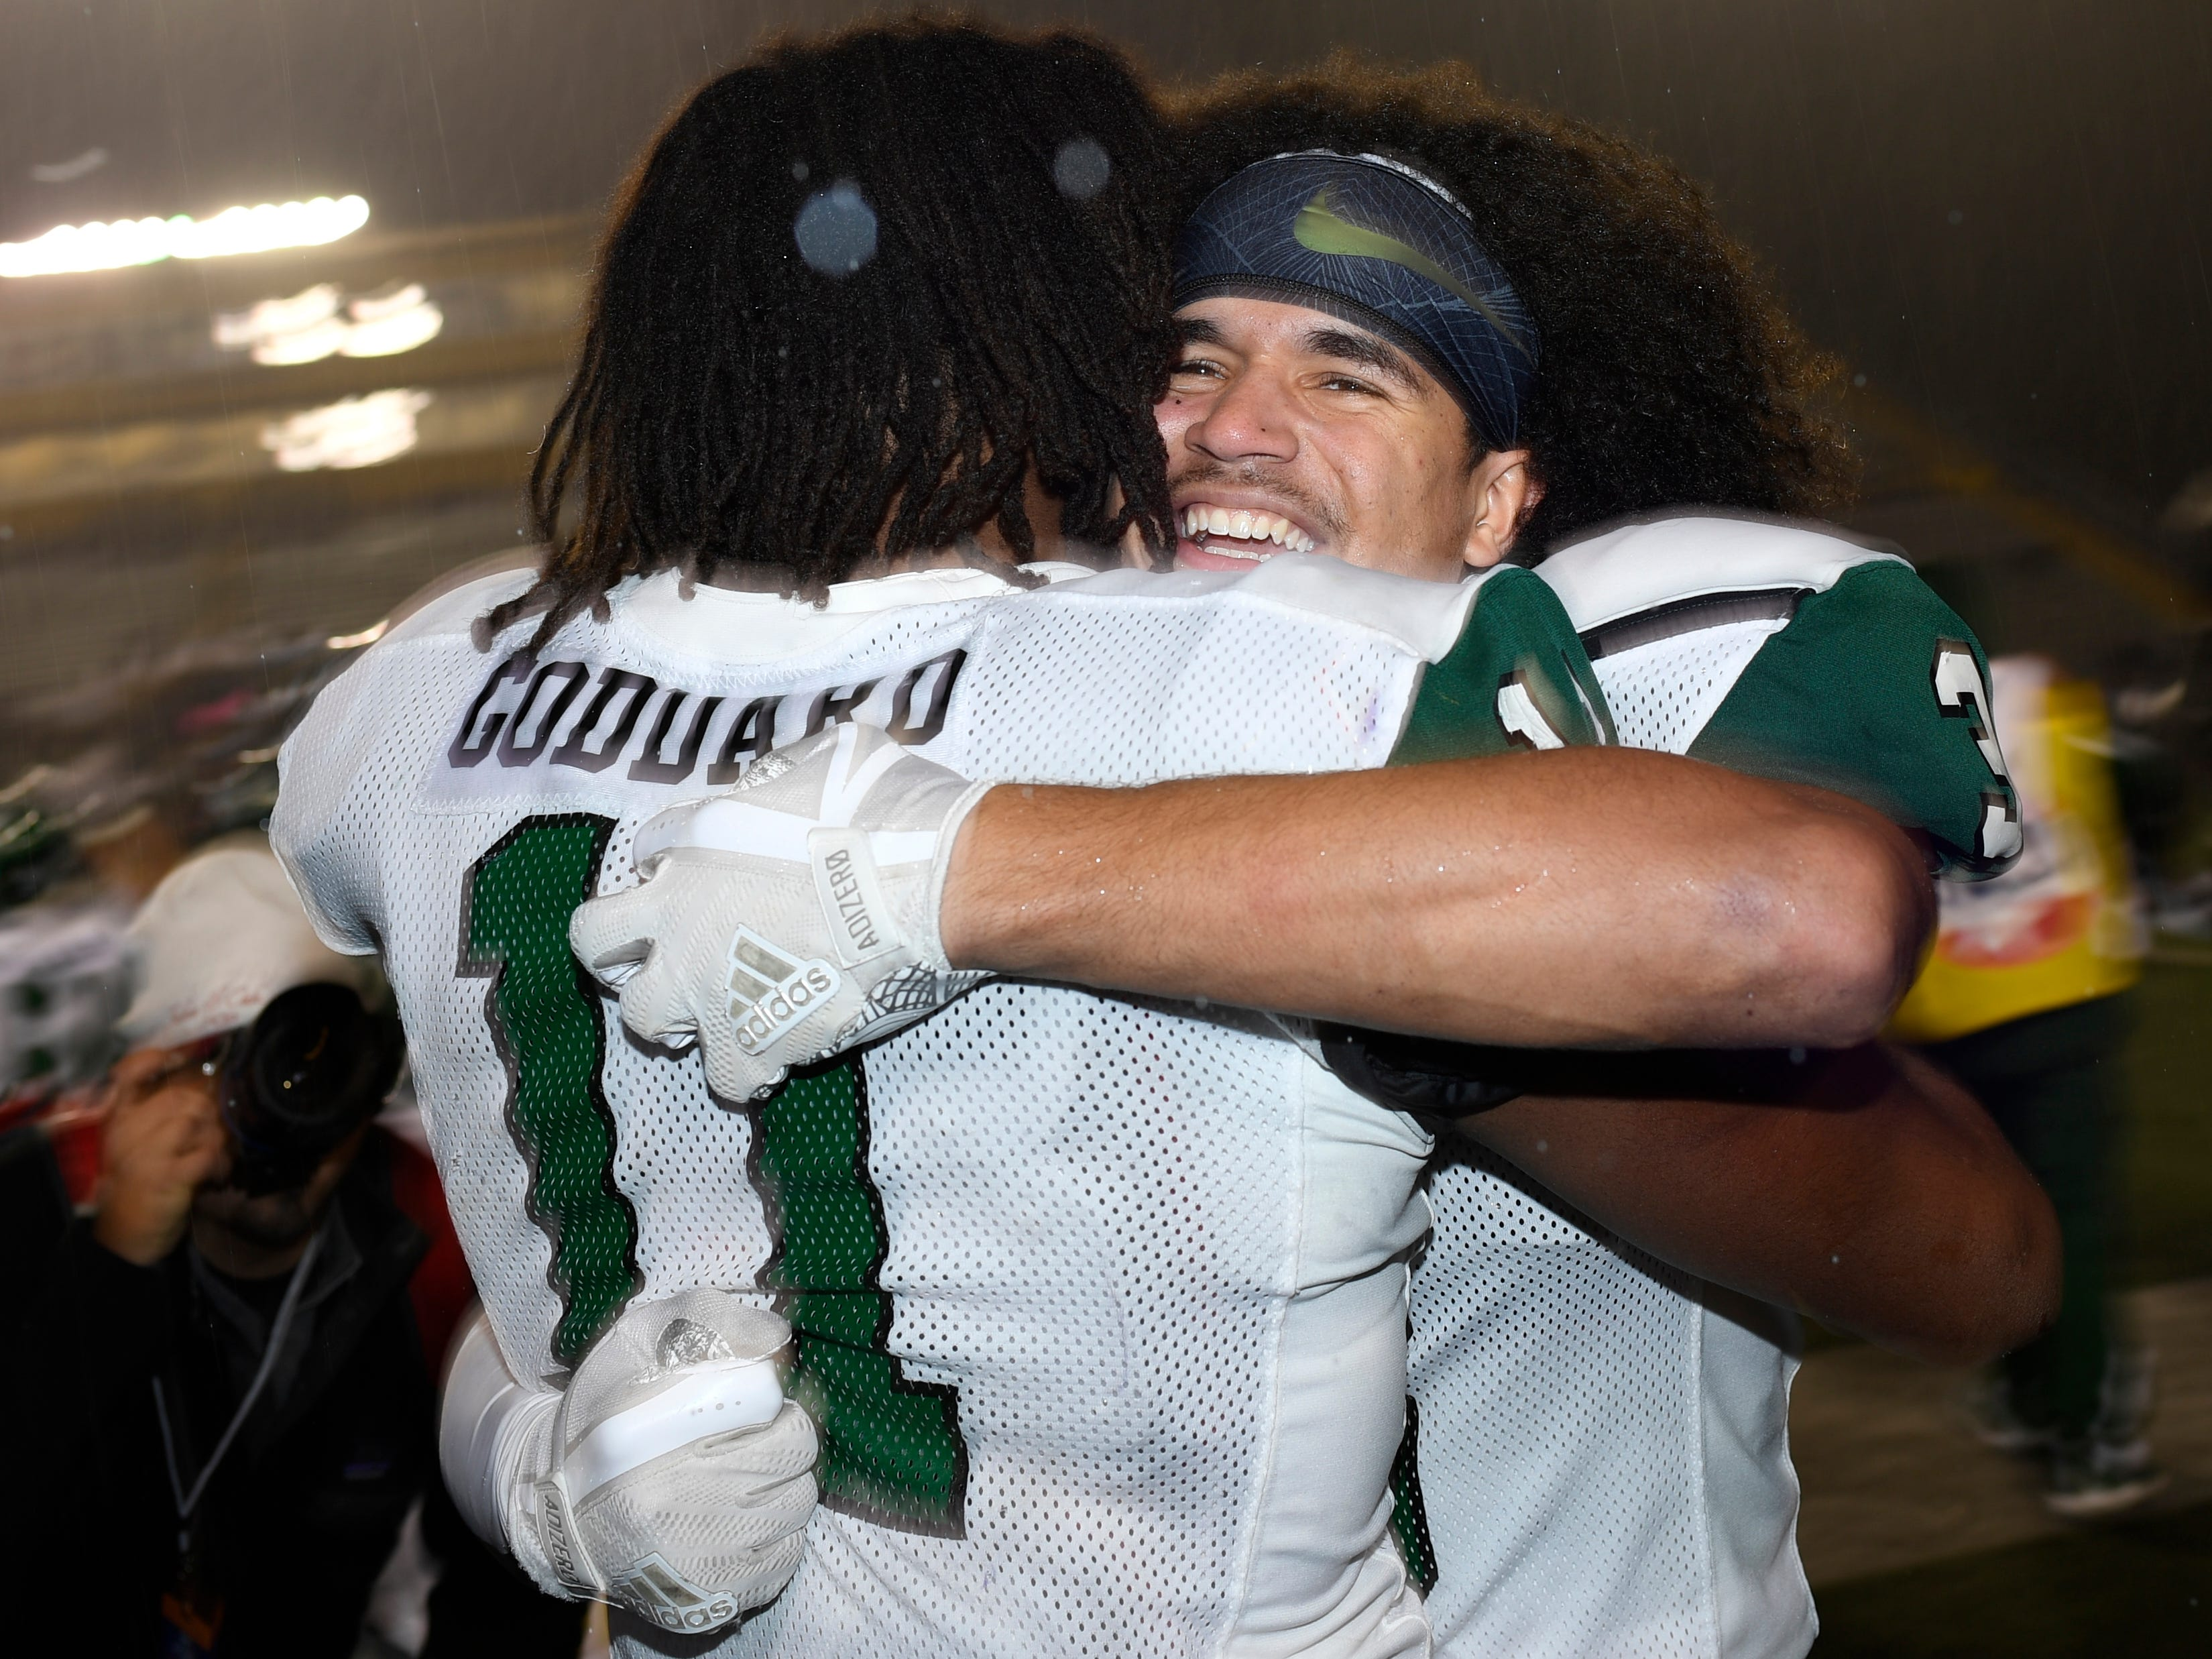 Greeneville's Jordan Gillespie (3) and Dorien Goddard (11) celebrate the team's 56-21 win in the Class 4A BlueCross Bowl state championship at Tennessee Tech's Tucker Stadium in Cookeville, Tenn., on Thursday, Nov. 29, 2018.